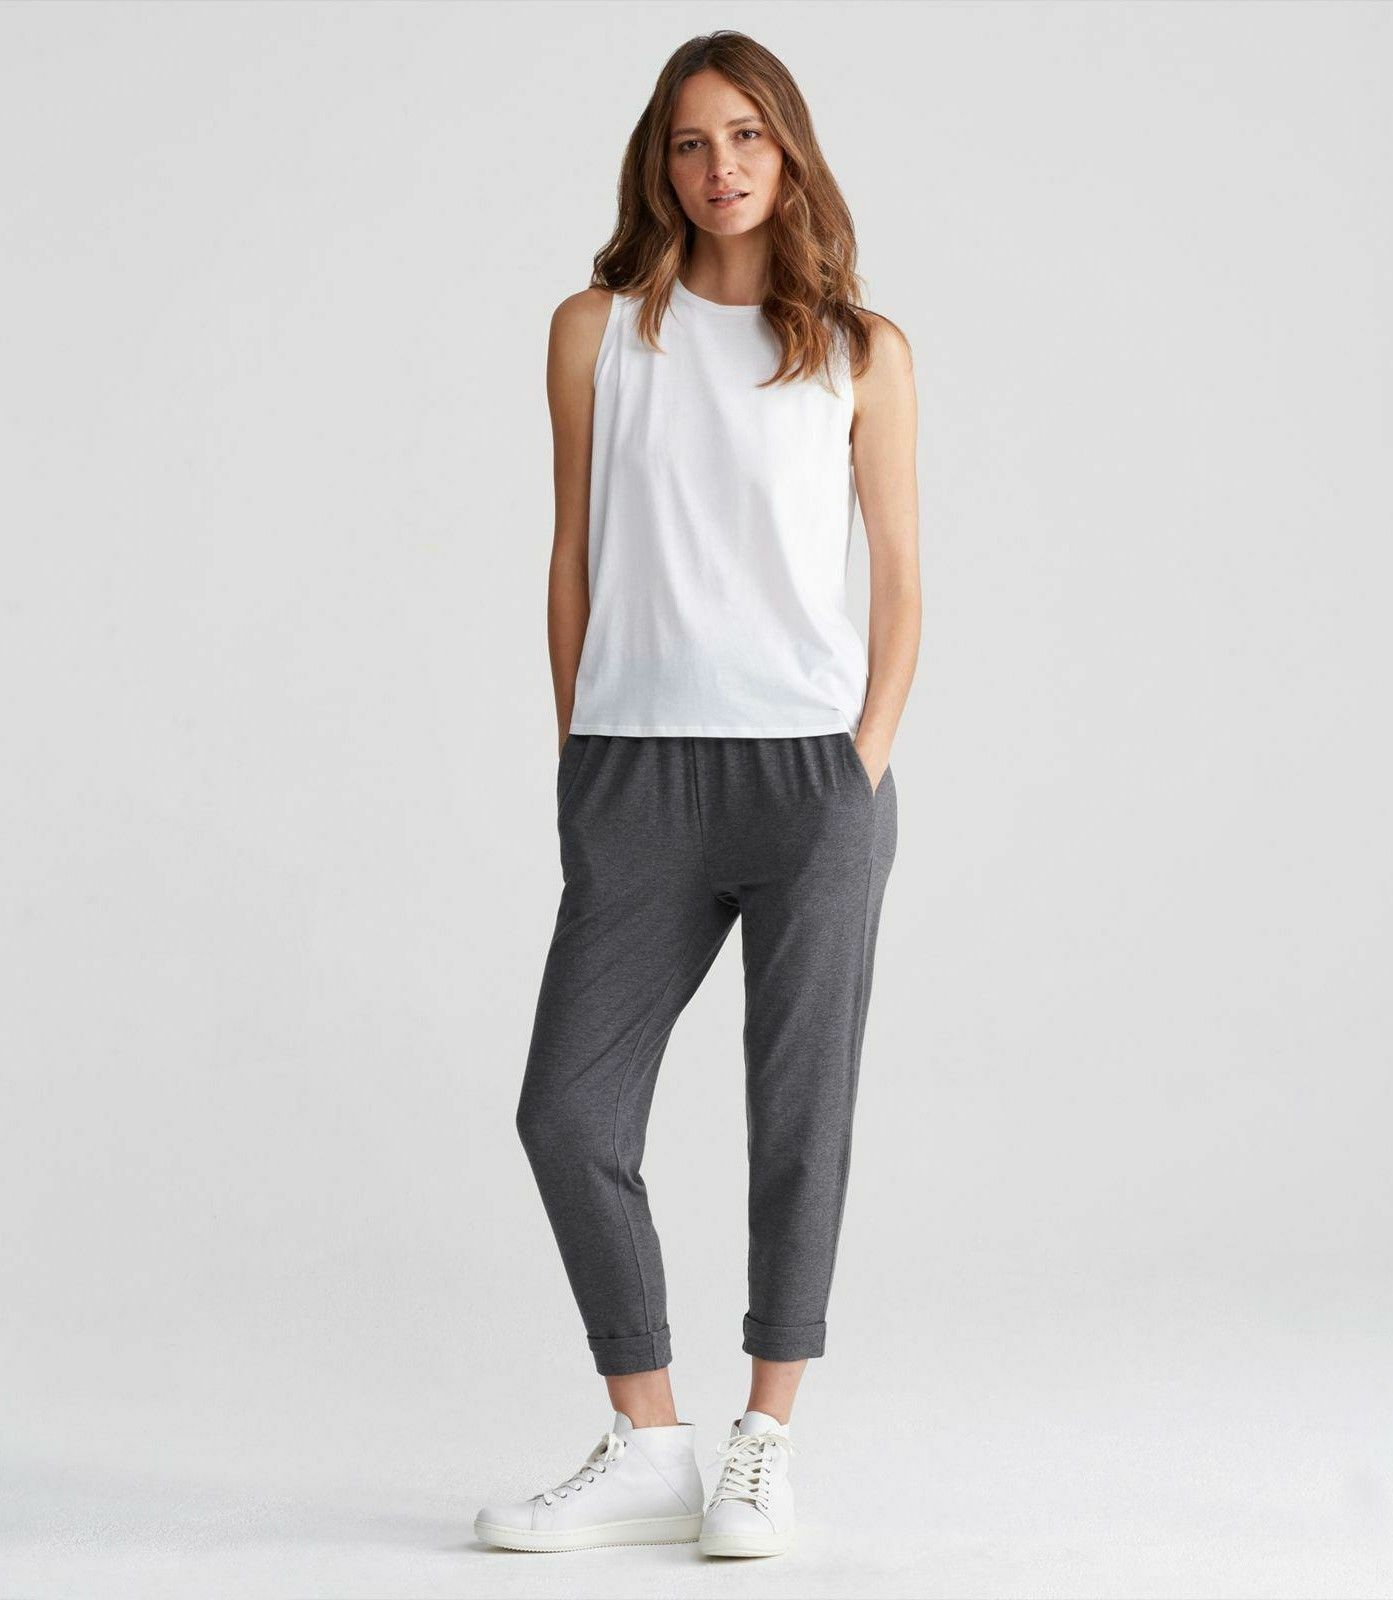 NWT Eileen Fisher Ash Cozy Tencel Stretch Jersey Slouchy  Pant Size L MSRP  198